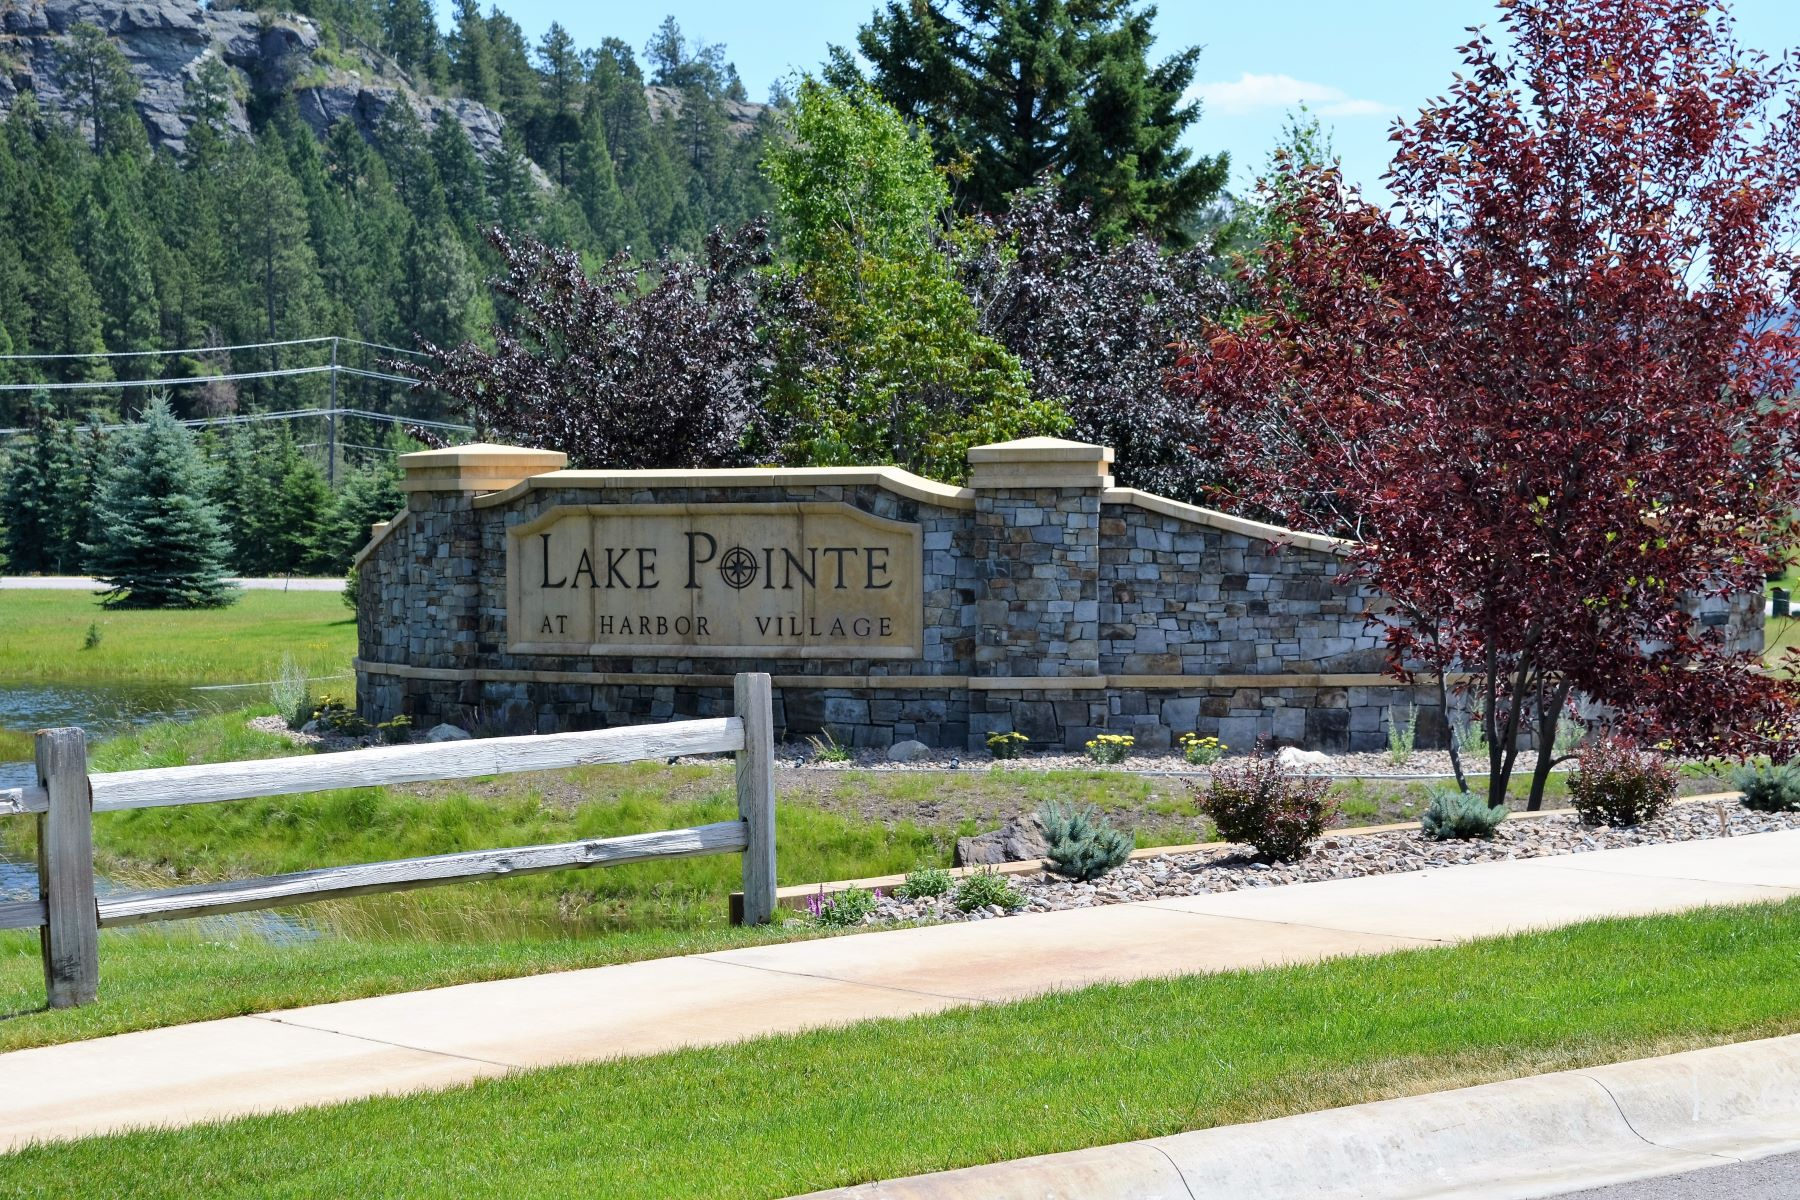 Additional photo for property listing at 1315 Lake Pointe Drive, Bigfork, MT 59911 1315  Lake Pointe Dr Bigfork, Montana 59911 United States